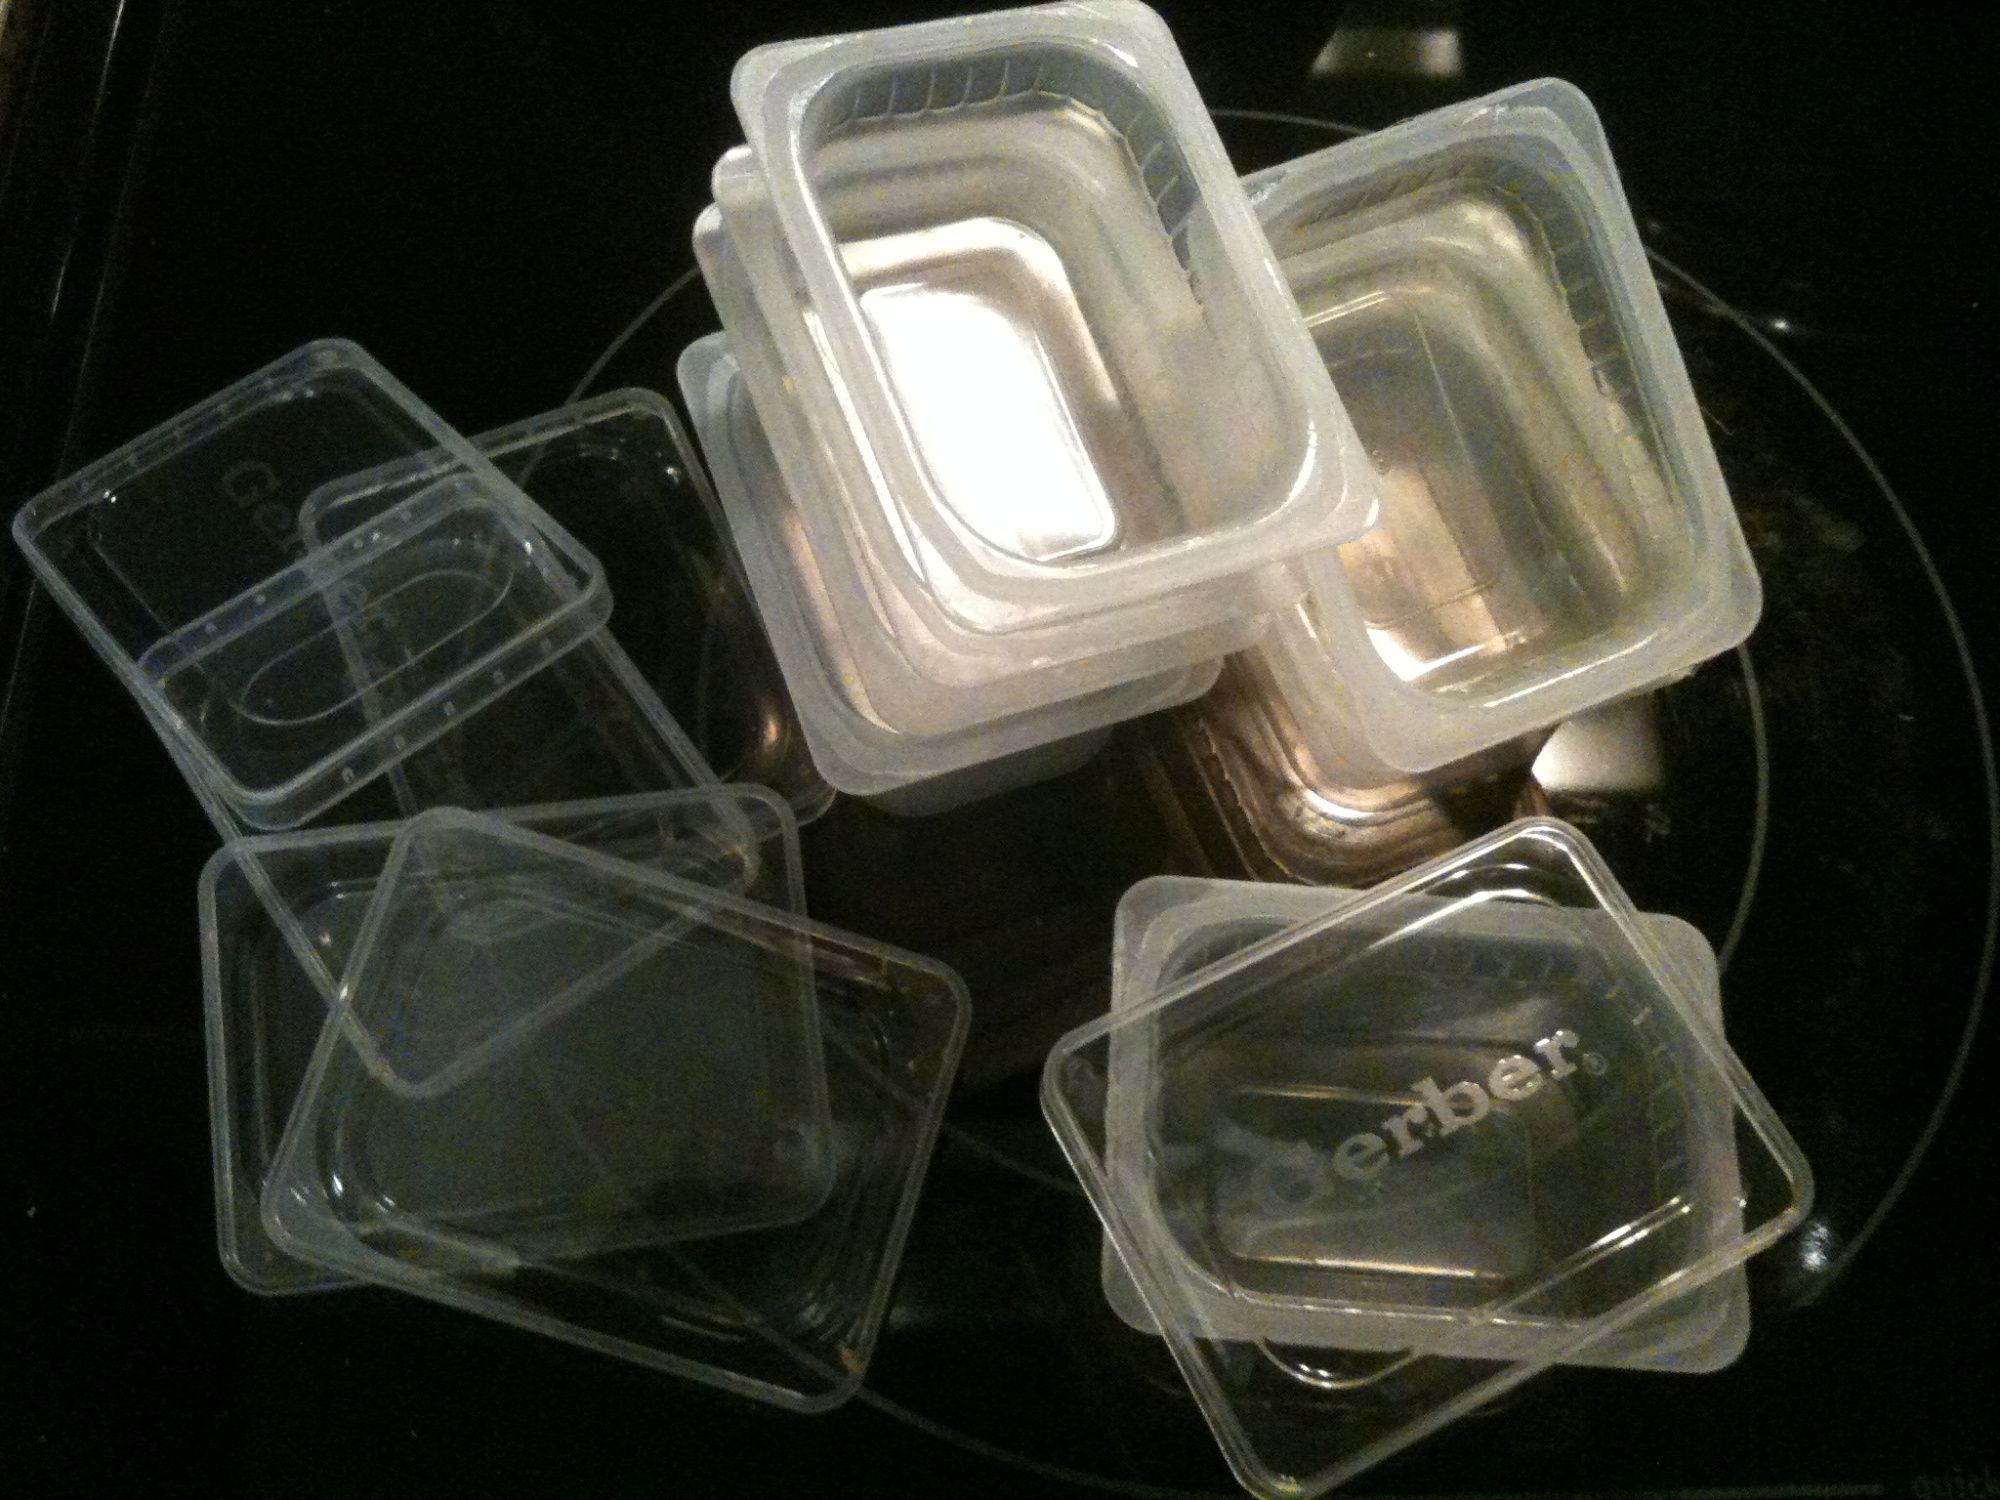 empty gerber food containers